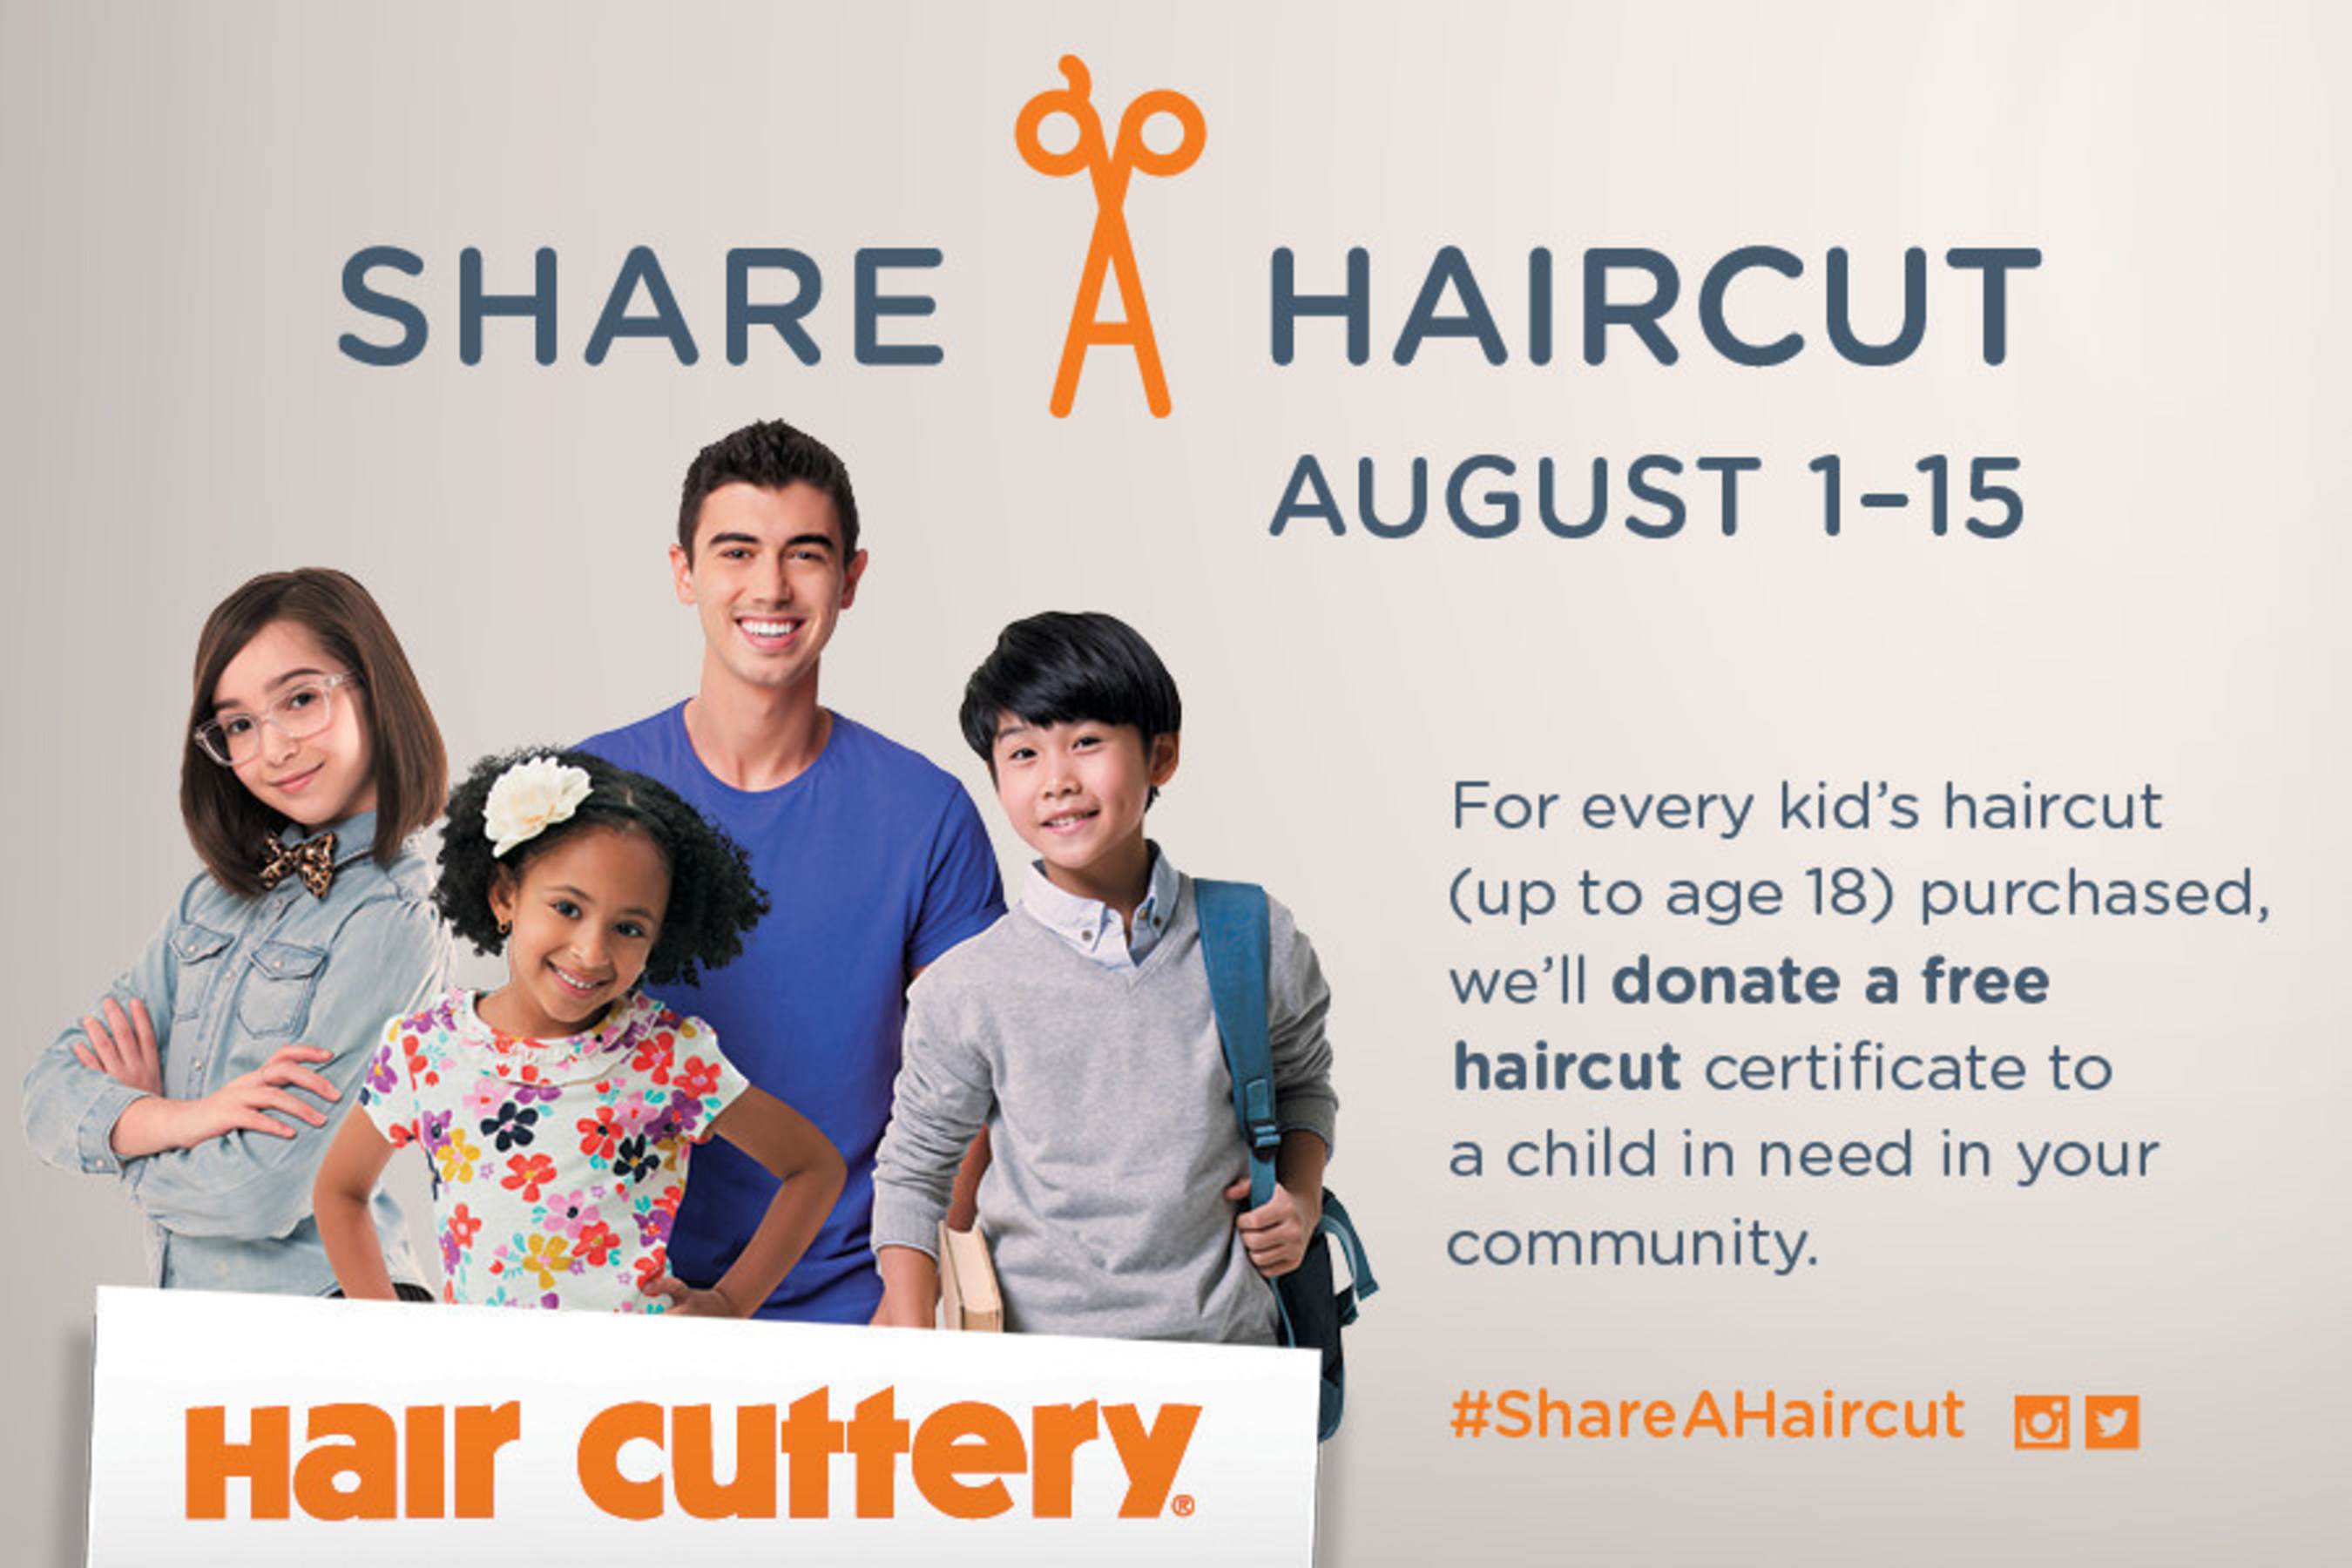 Back To School Share A Haircut Program To Benefit Thousands Of